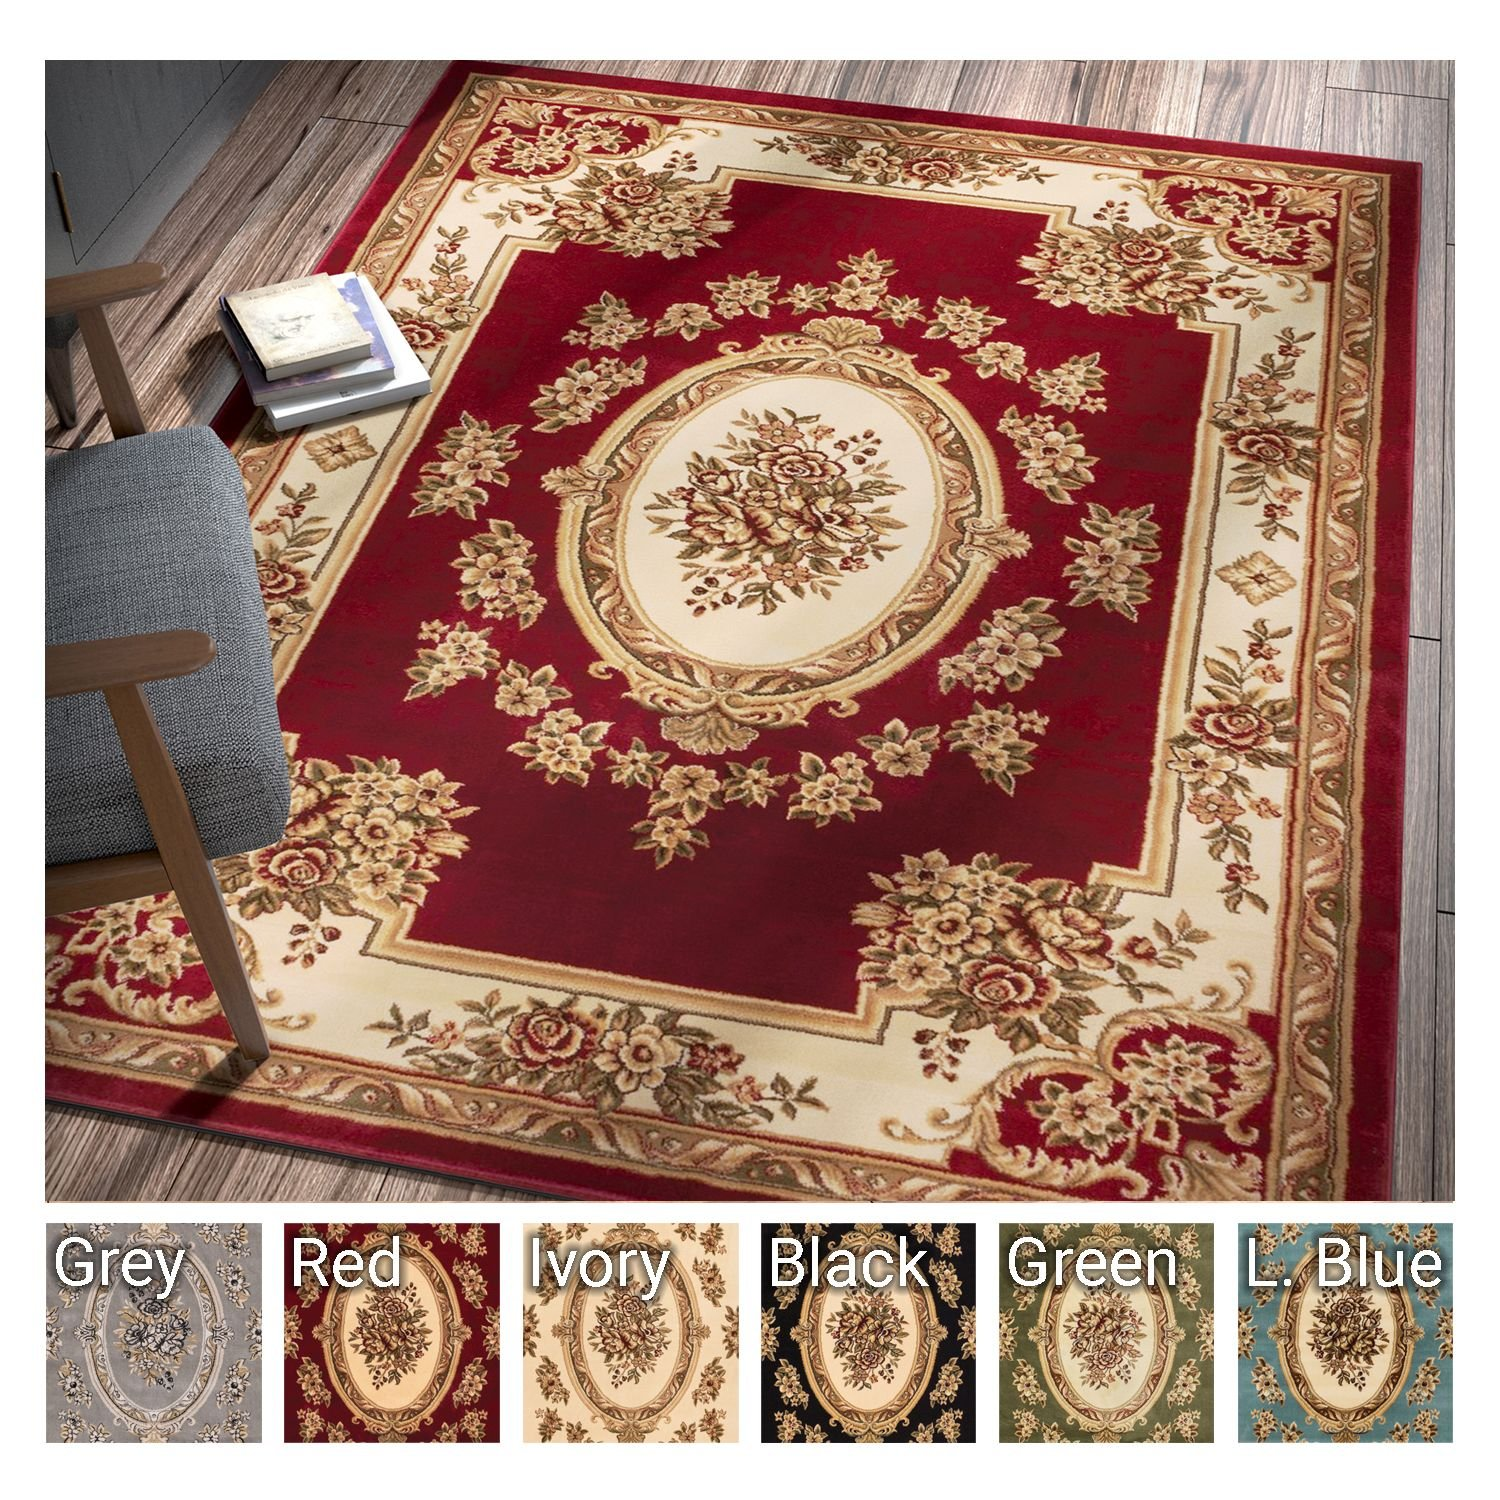 Pastoral Medallion Red French European Formal Traditional 5x7 (5'3'' x 7'3'') Area Rug Easy to Clean Stain Fade Resistant Shed Free Modern Contemporary Floral Thick Soft Plush Living Dining Room Rug by Well Woven